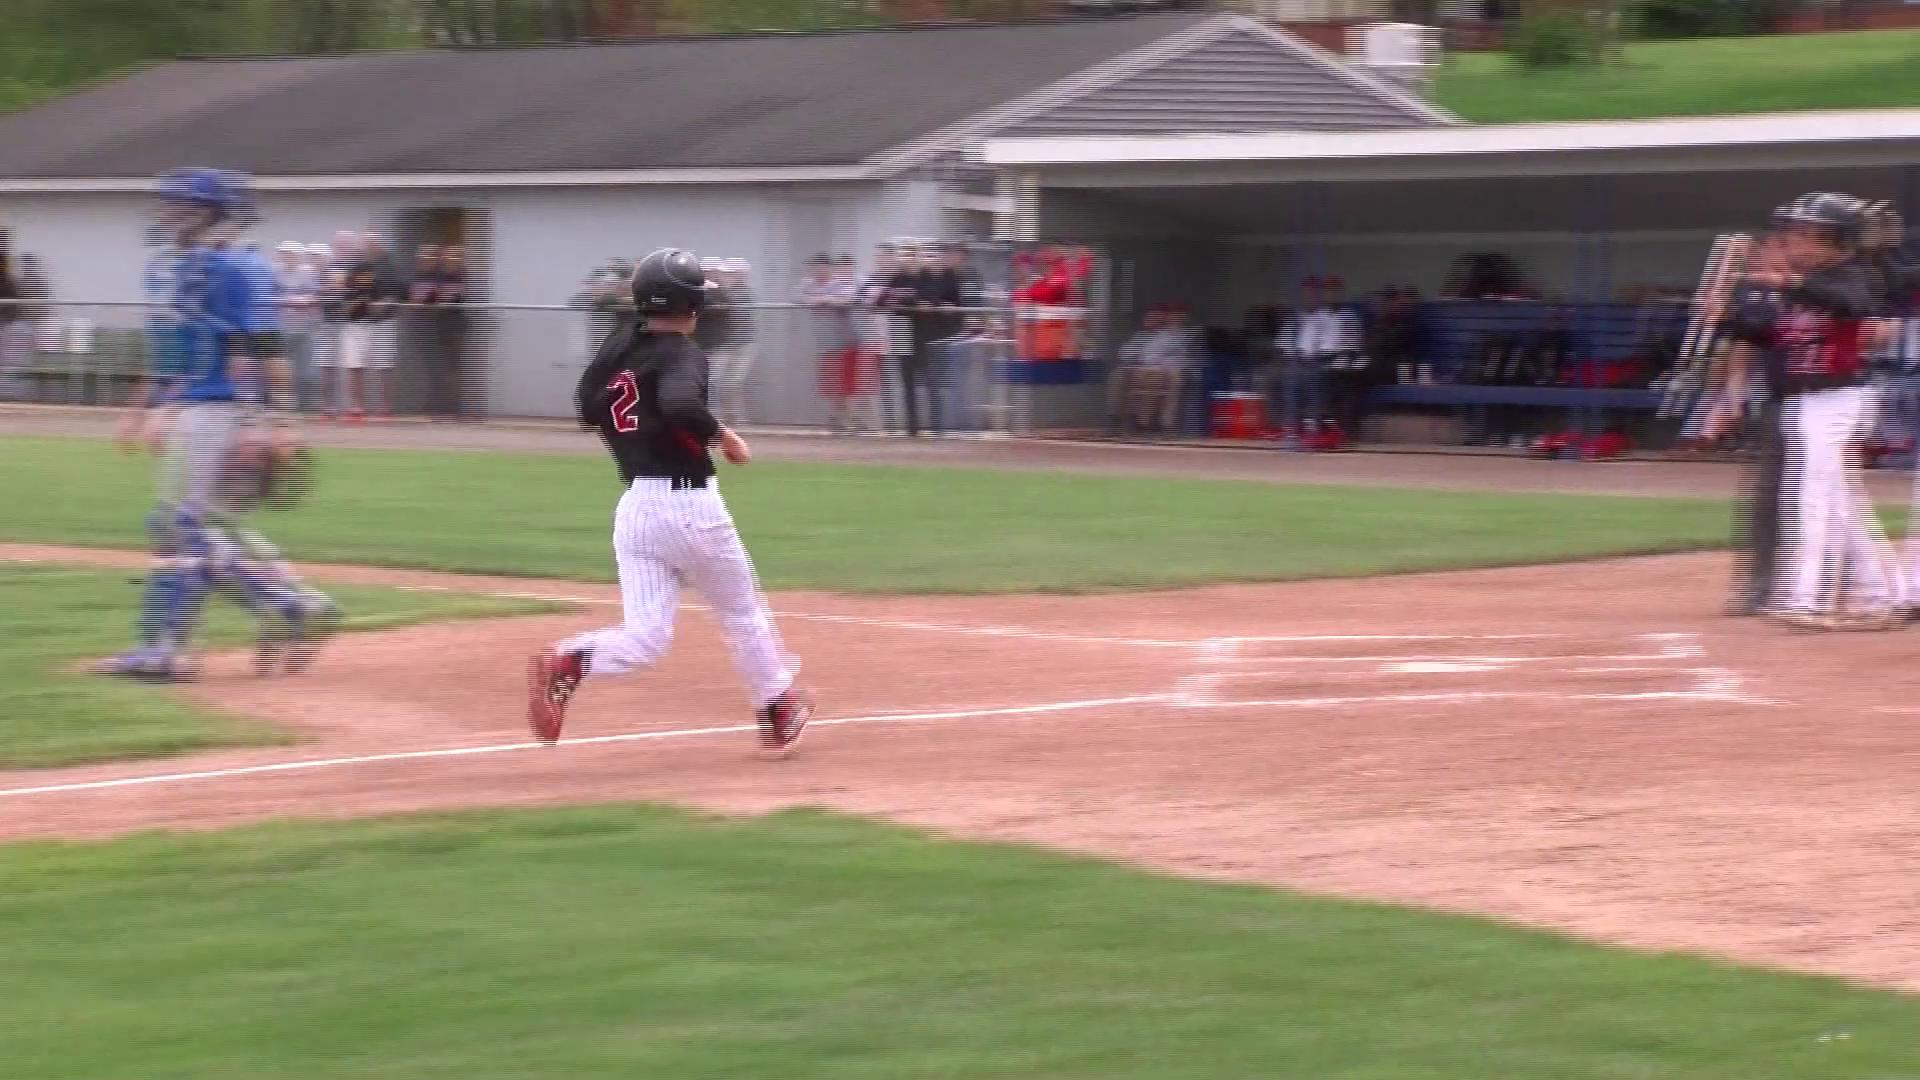 4.22.17 Video - Edison, Steubenville advance to OVAC 4A baseball final